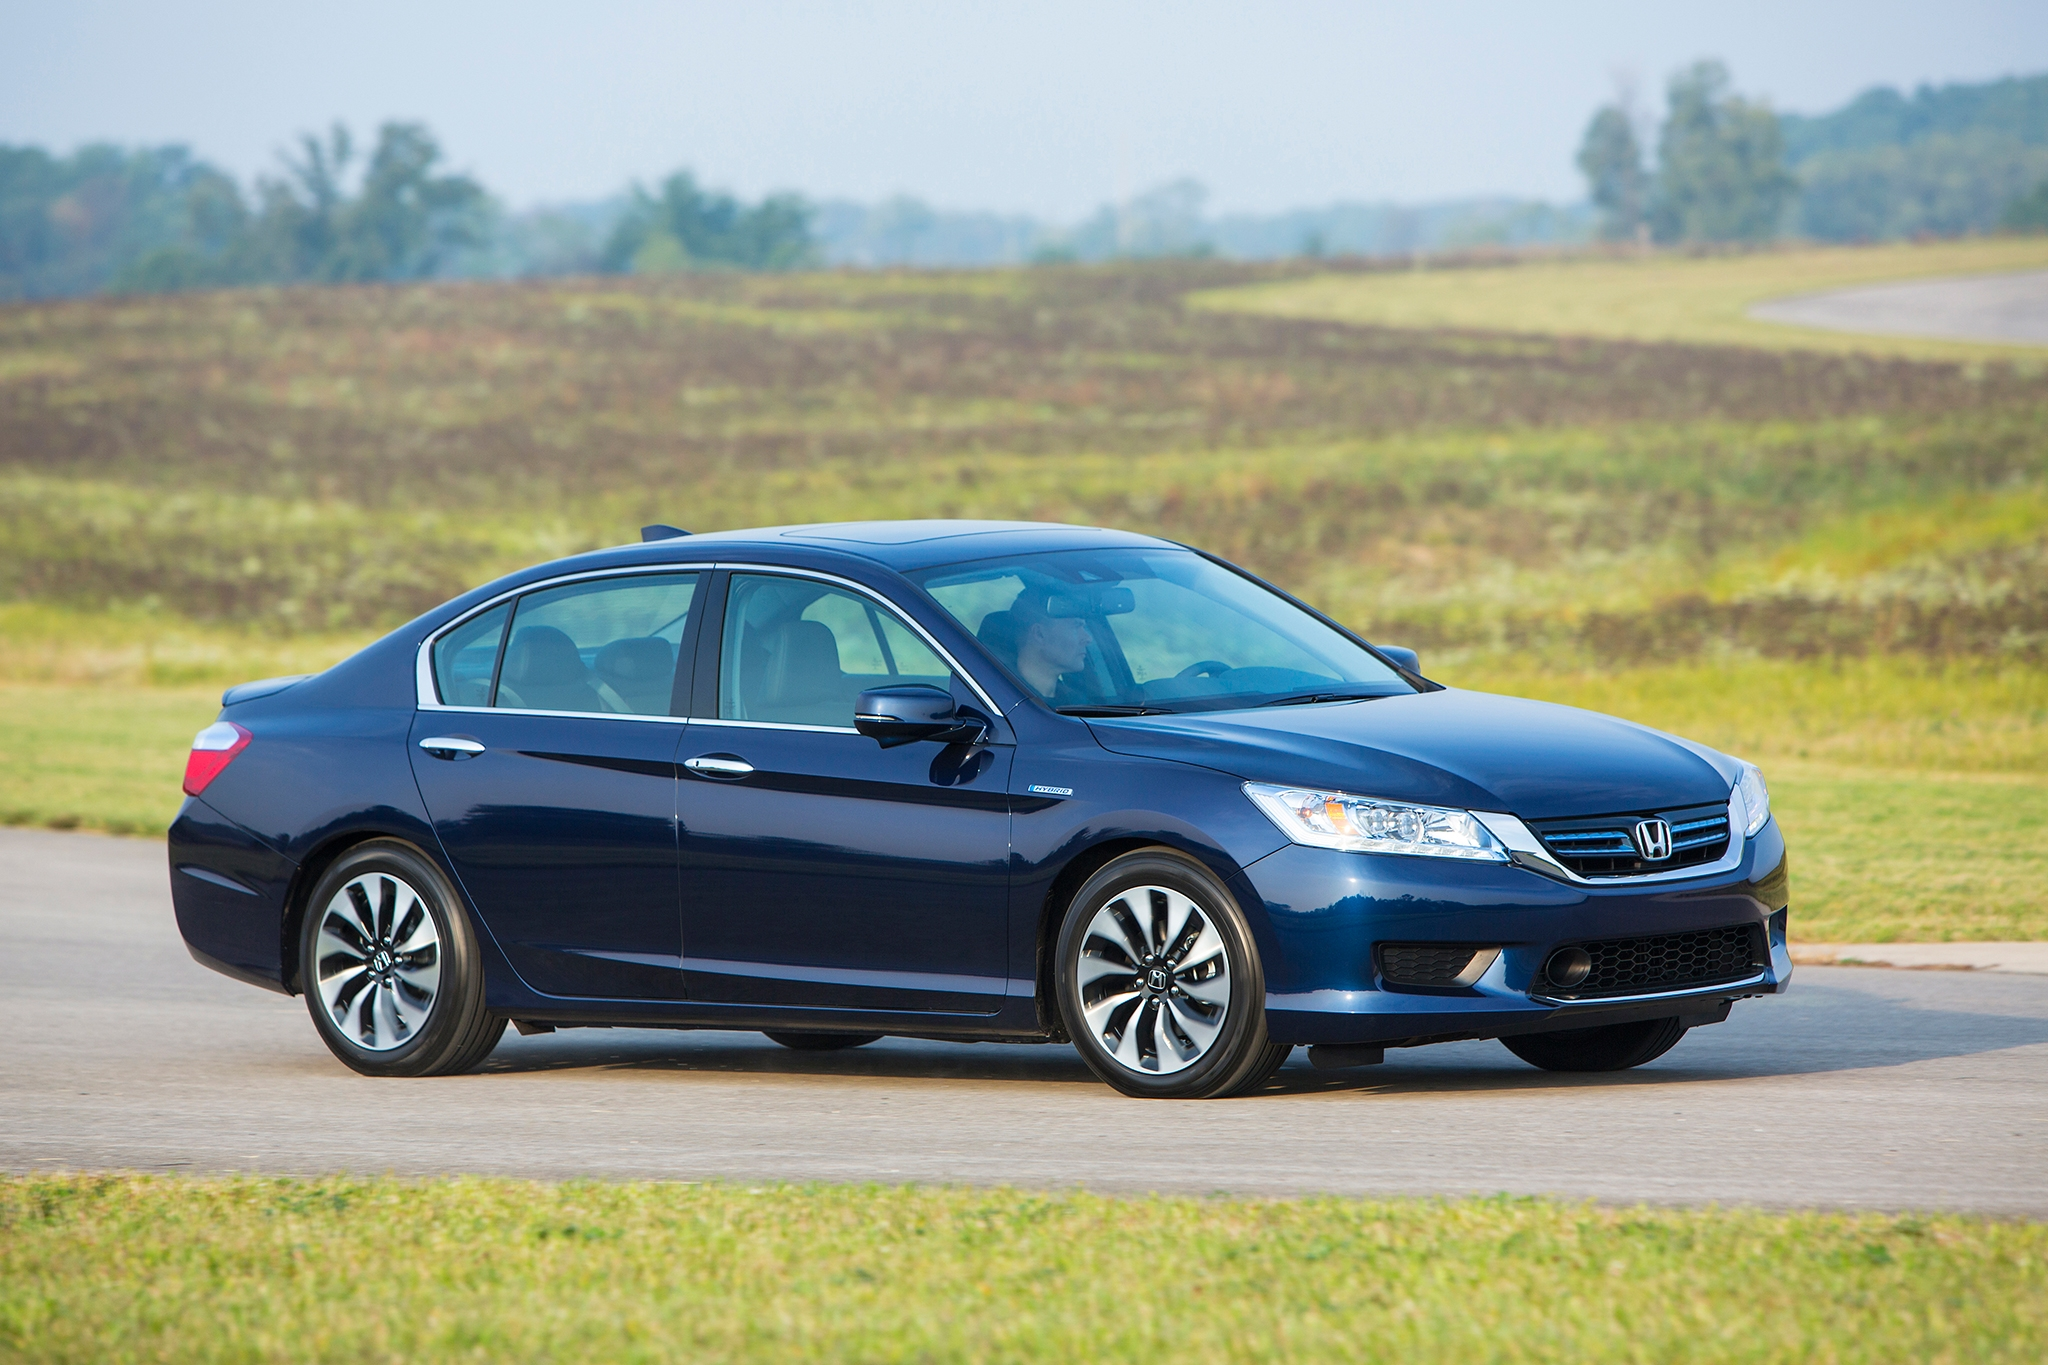 2014 honda accord reviews and rating motor trend 2014 honda accord invoice price